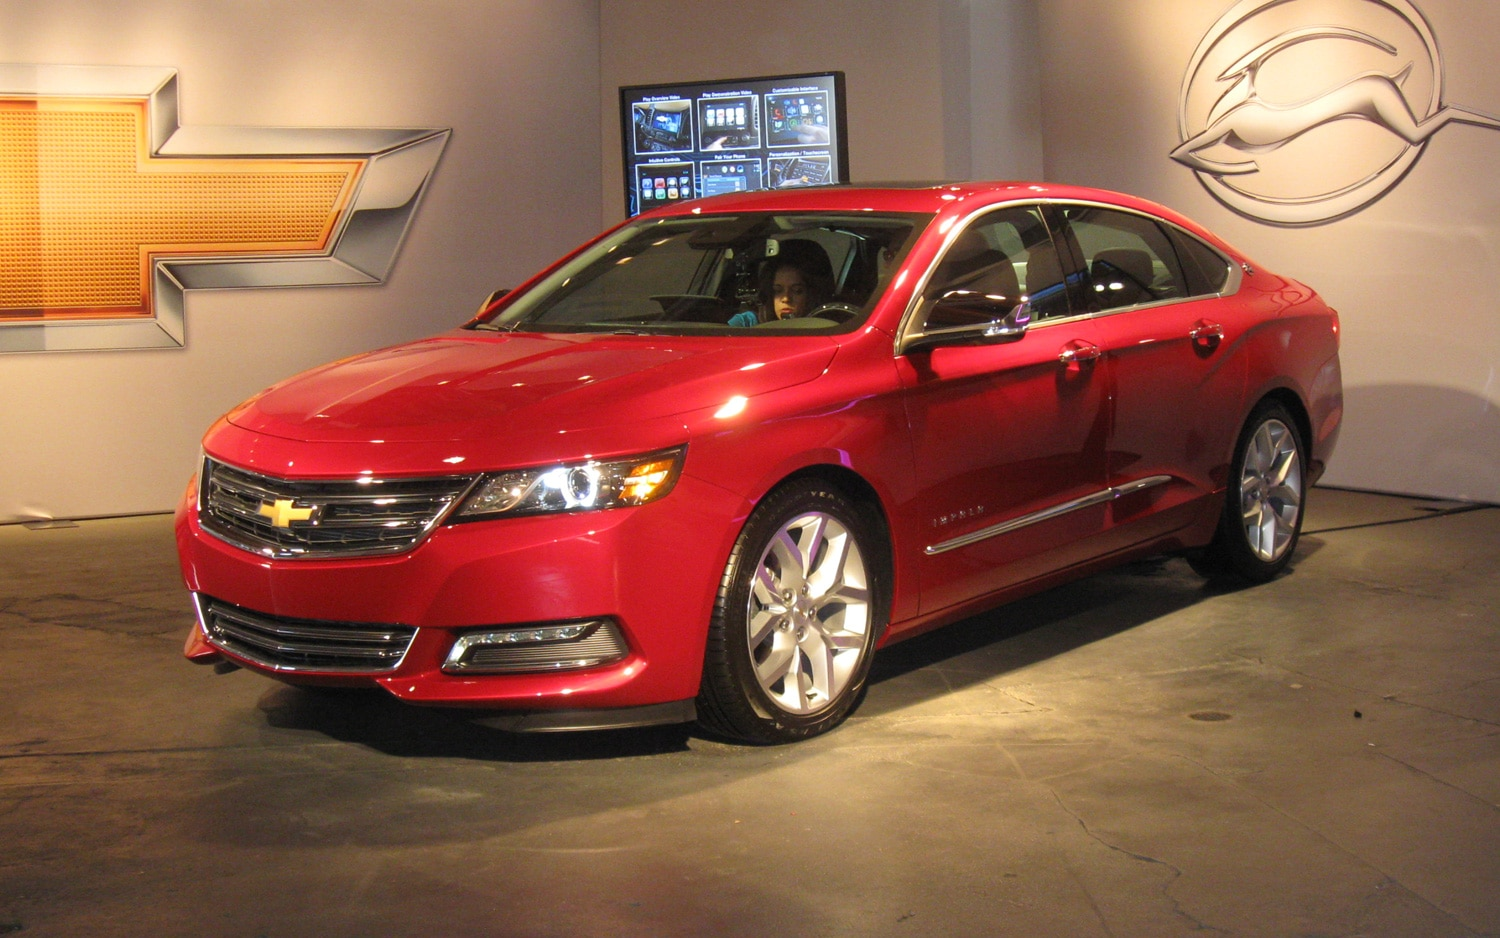 2014 Chevrolet Impala Next Generation MyLink Left Front 11